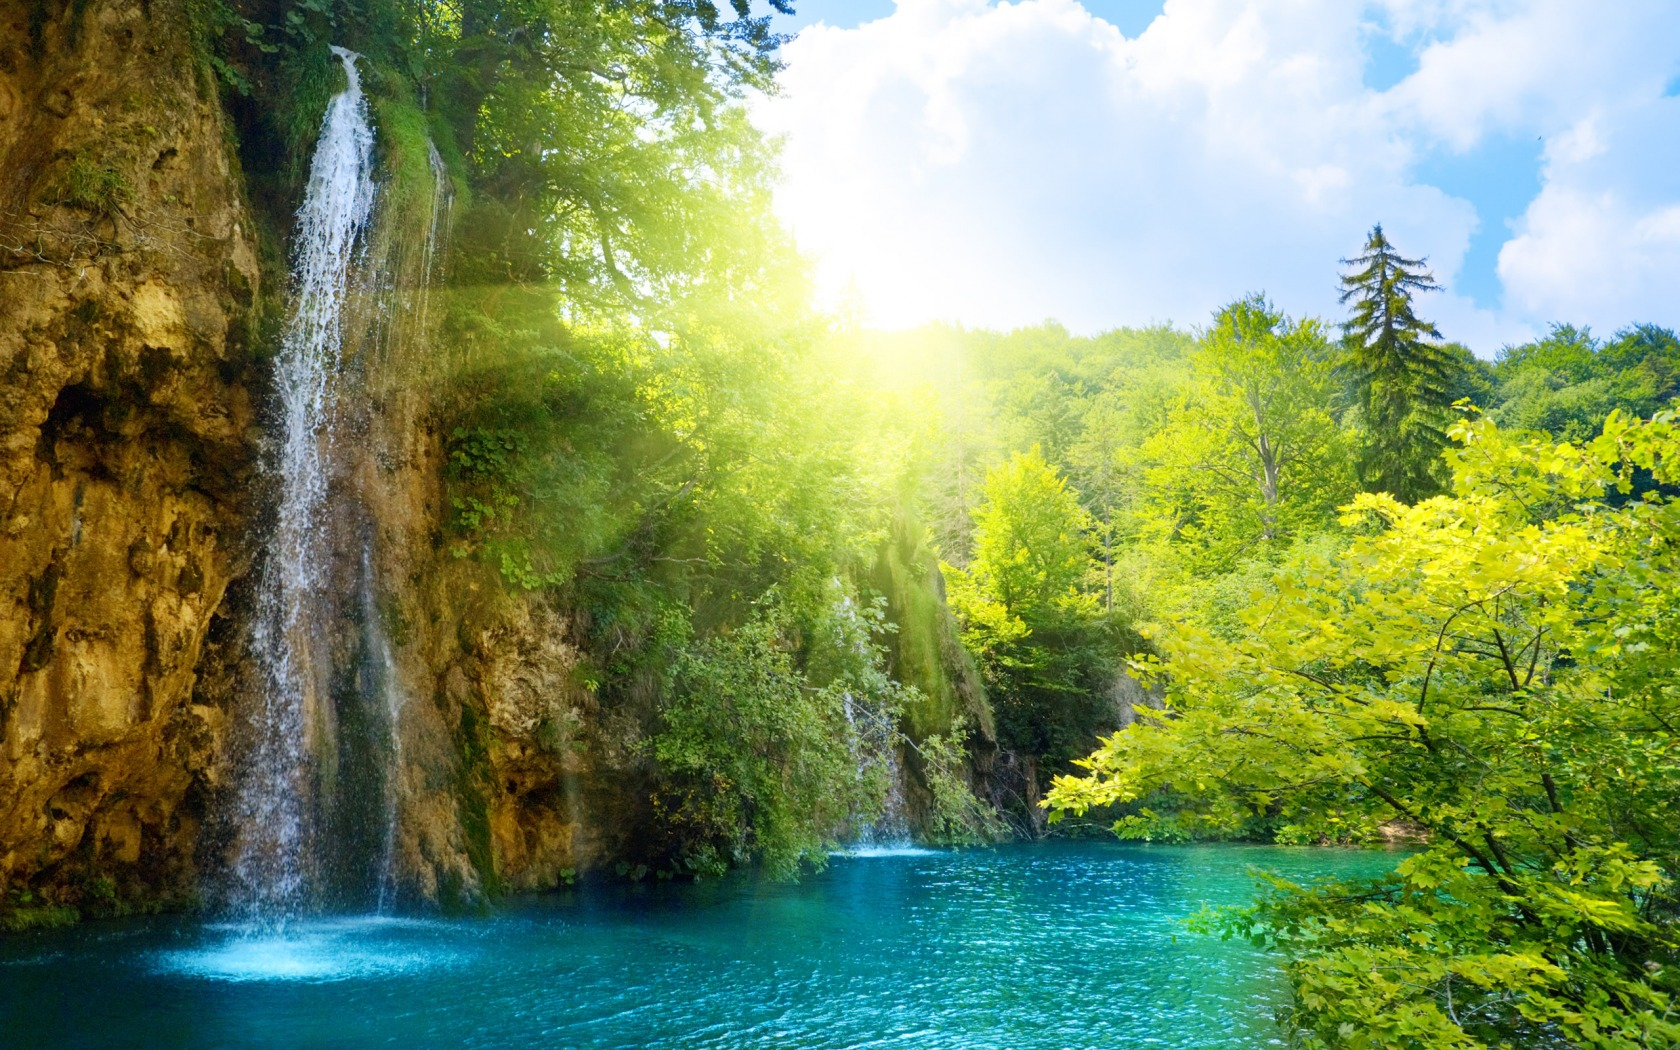 download waterfall live wallpaper which is under the waterfall 1680x1050